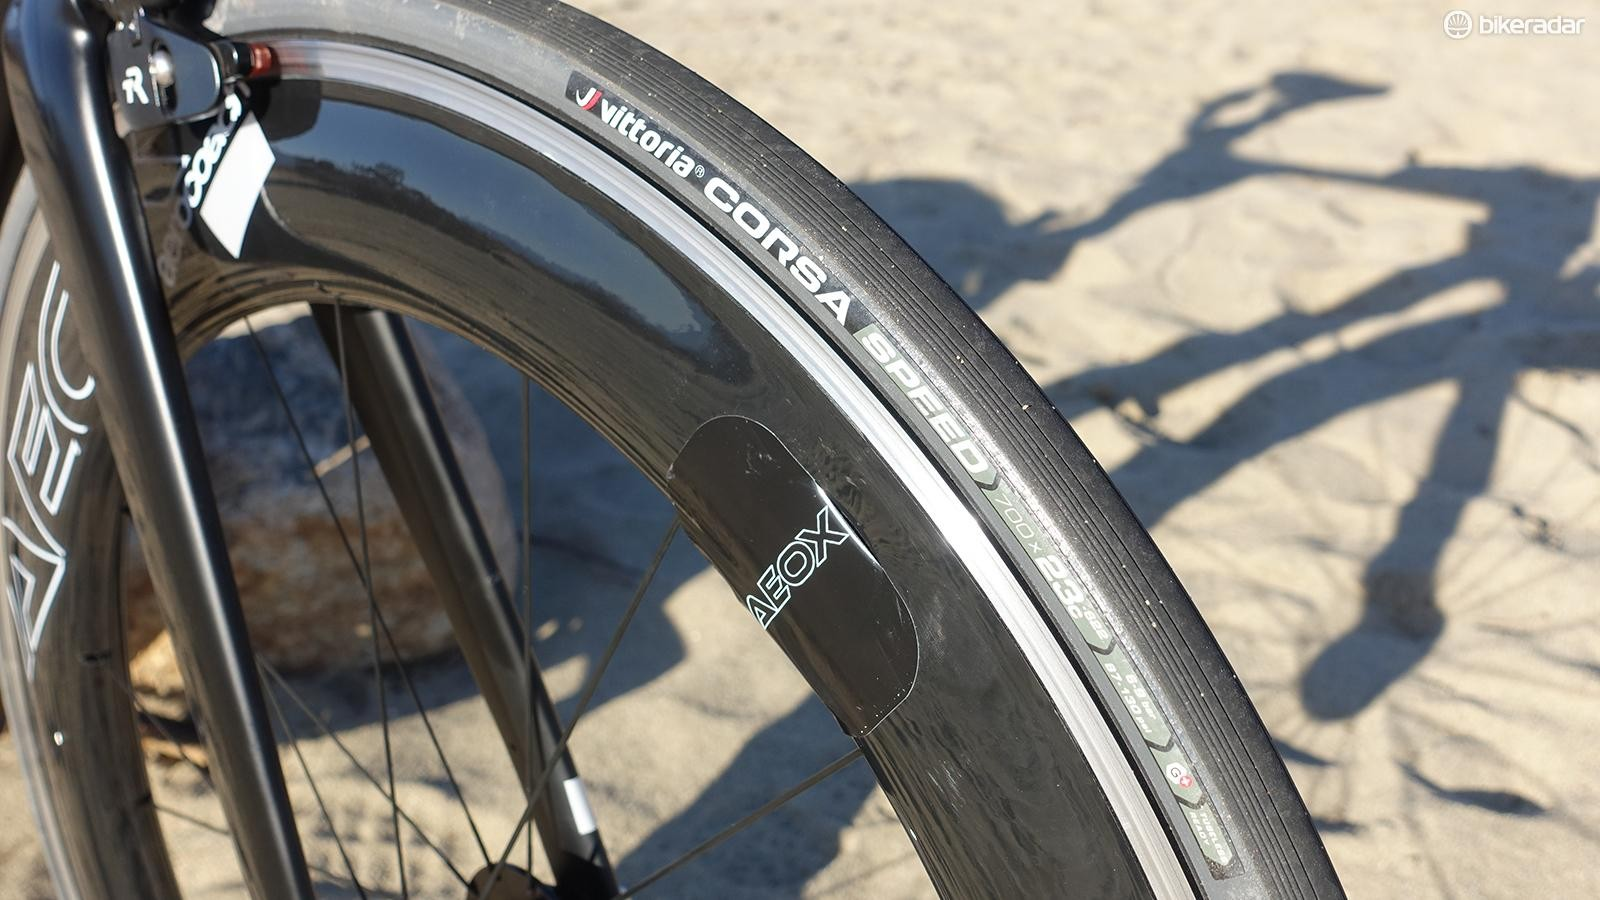 The AEOX wheels are designed around the profile of Vittoria's excellent Corsa Speed Open tubeless tires. On the bumpy roads of Borrego Springs, I ran pressures in the 70psi range